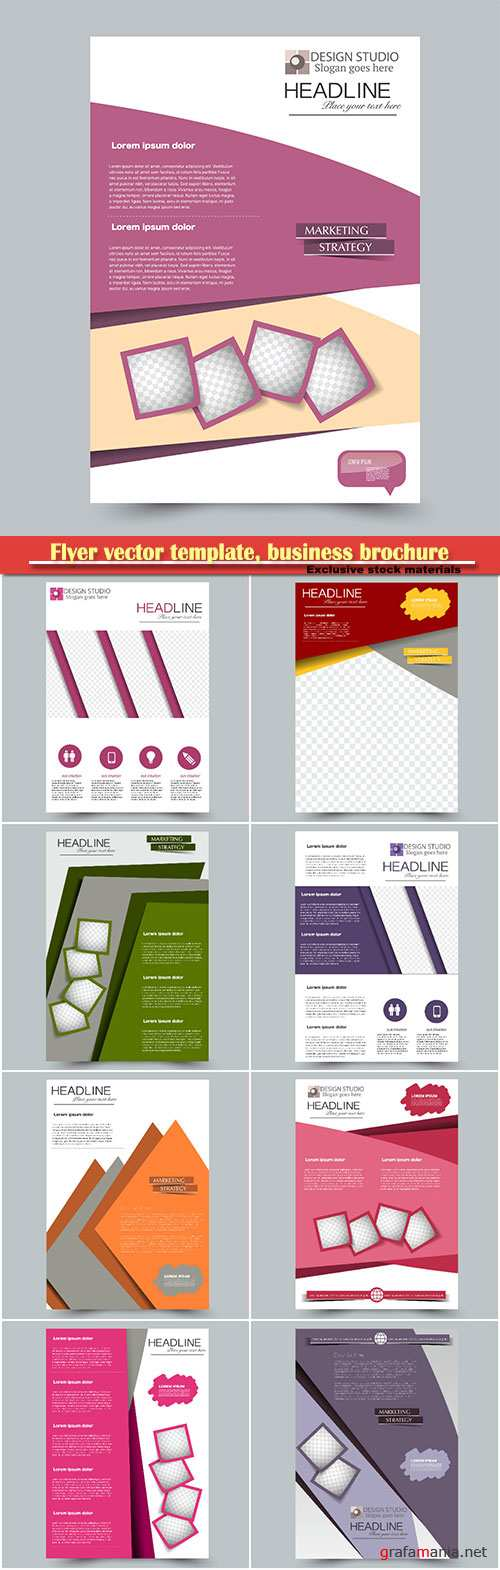 Flyer vector template, business brochure, magazine cover # 37